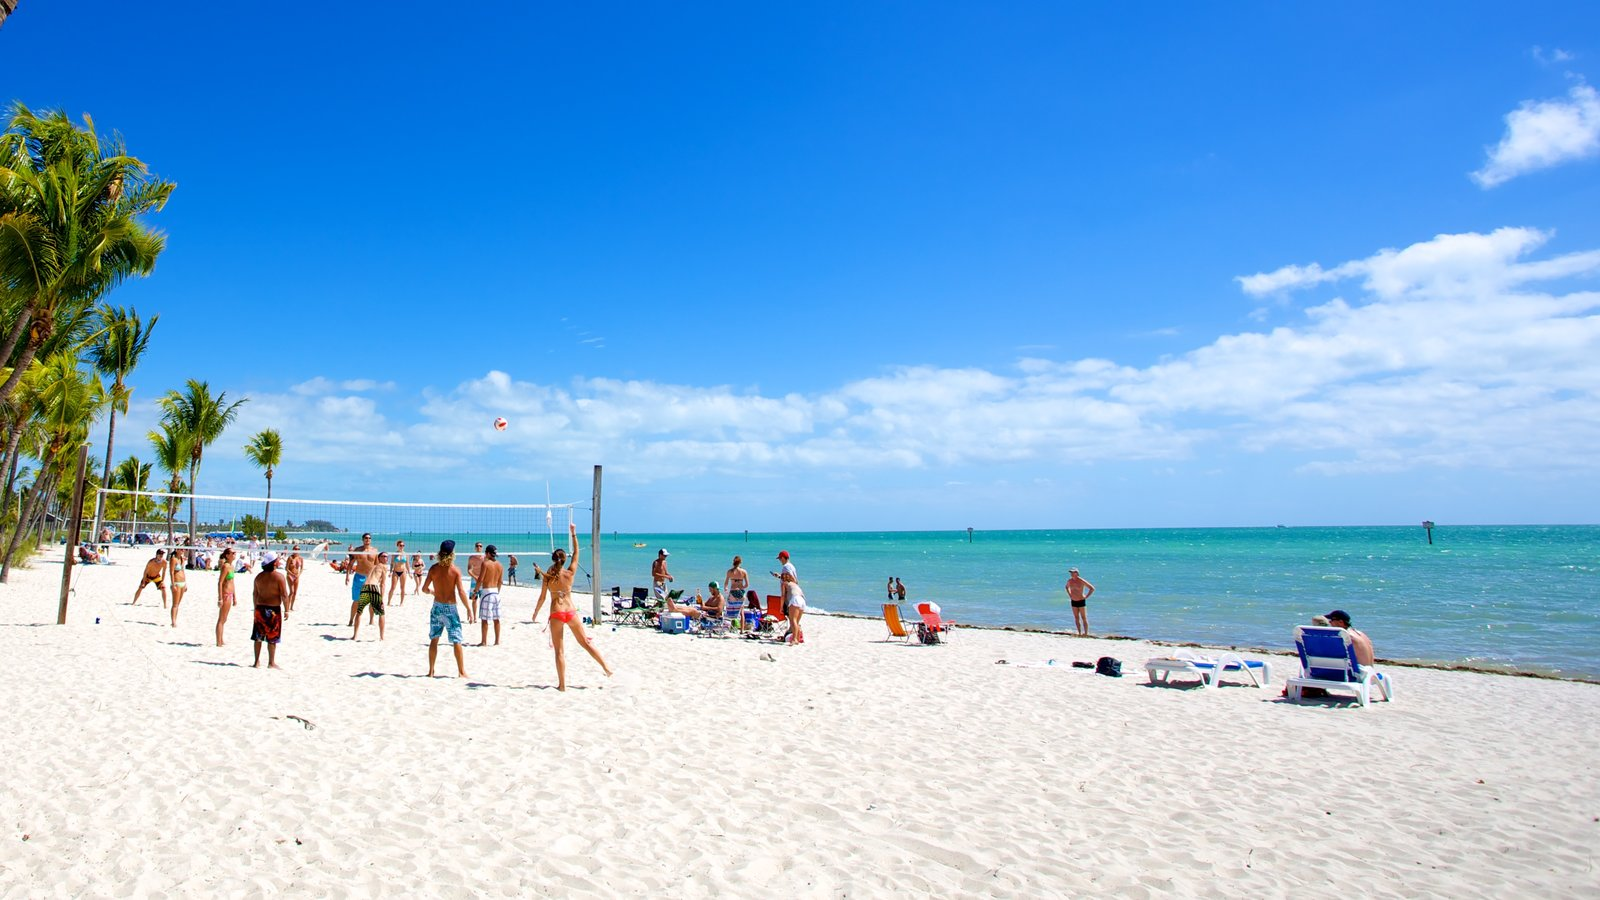 Smathers Beach which includes a sandy beach, tropical scenes and landscape views